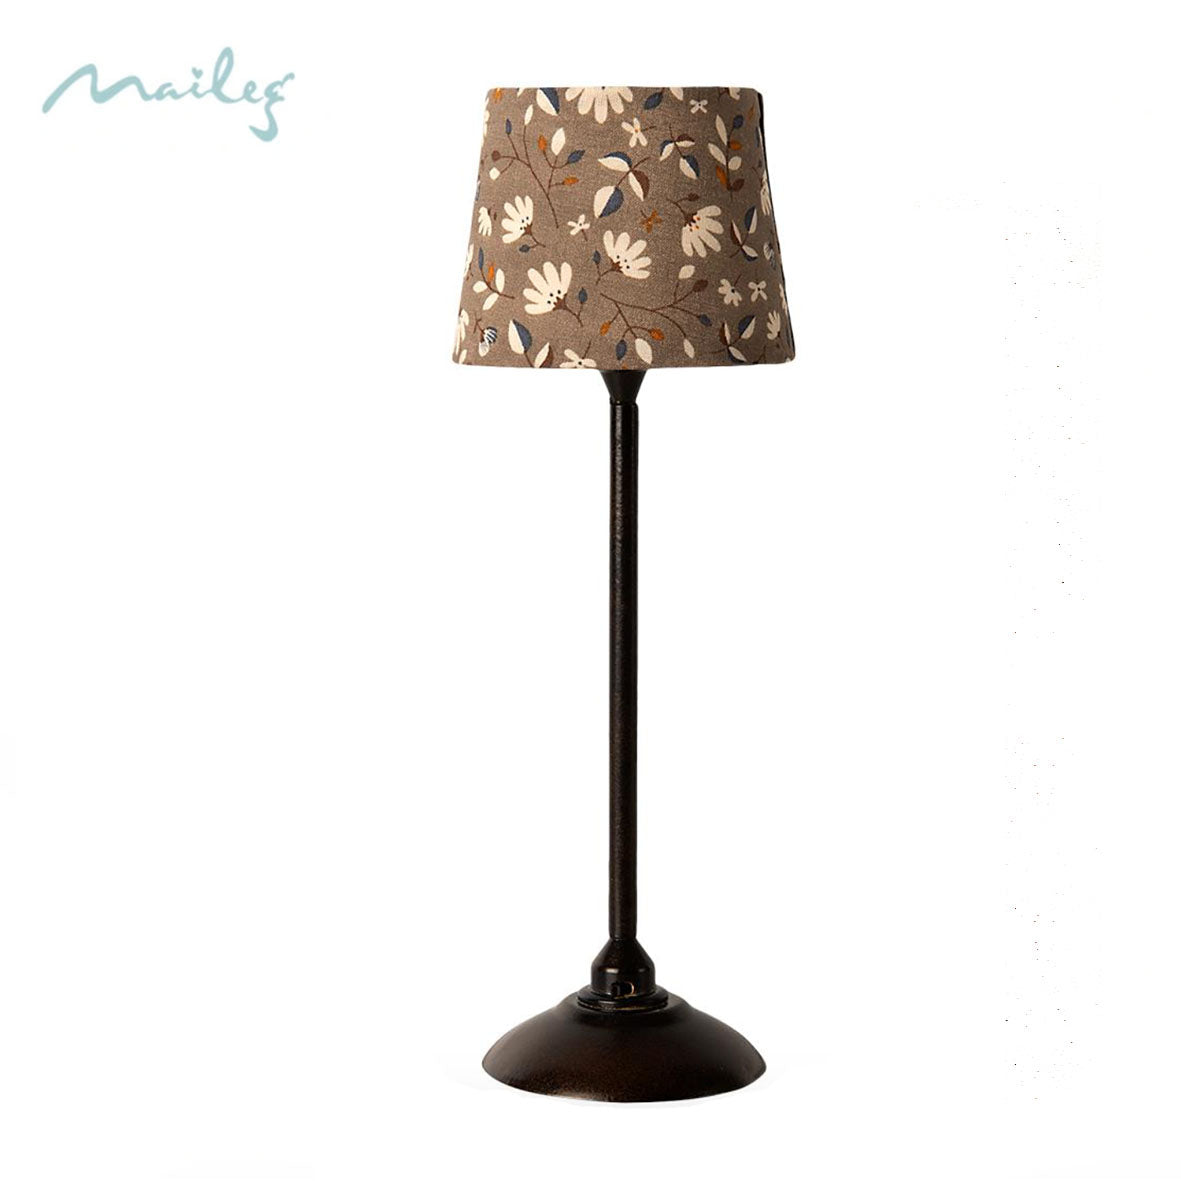 MAILEG Miniature Floor Lamp